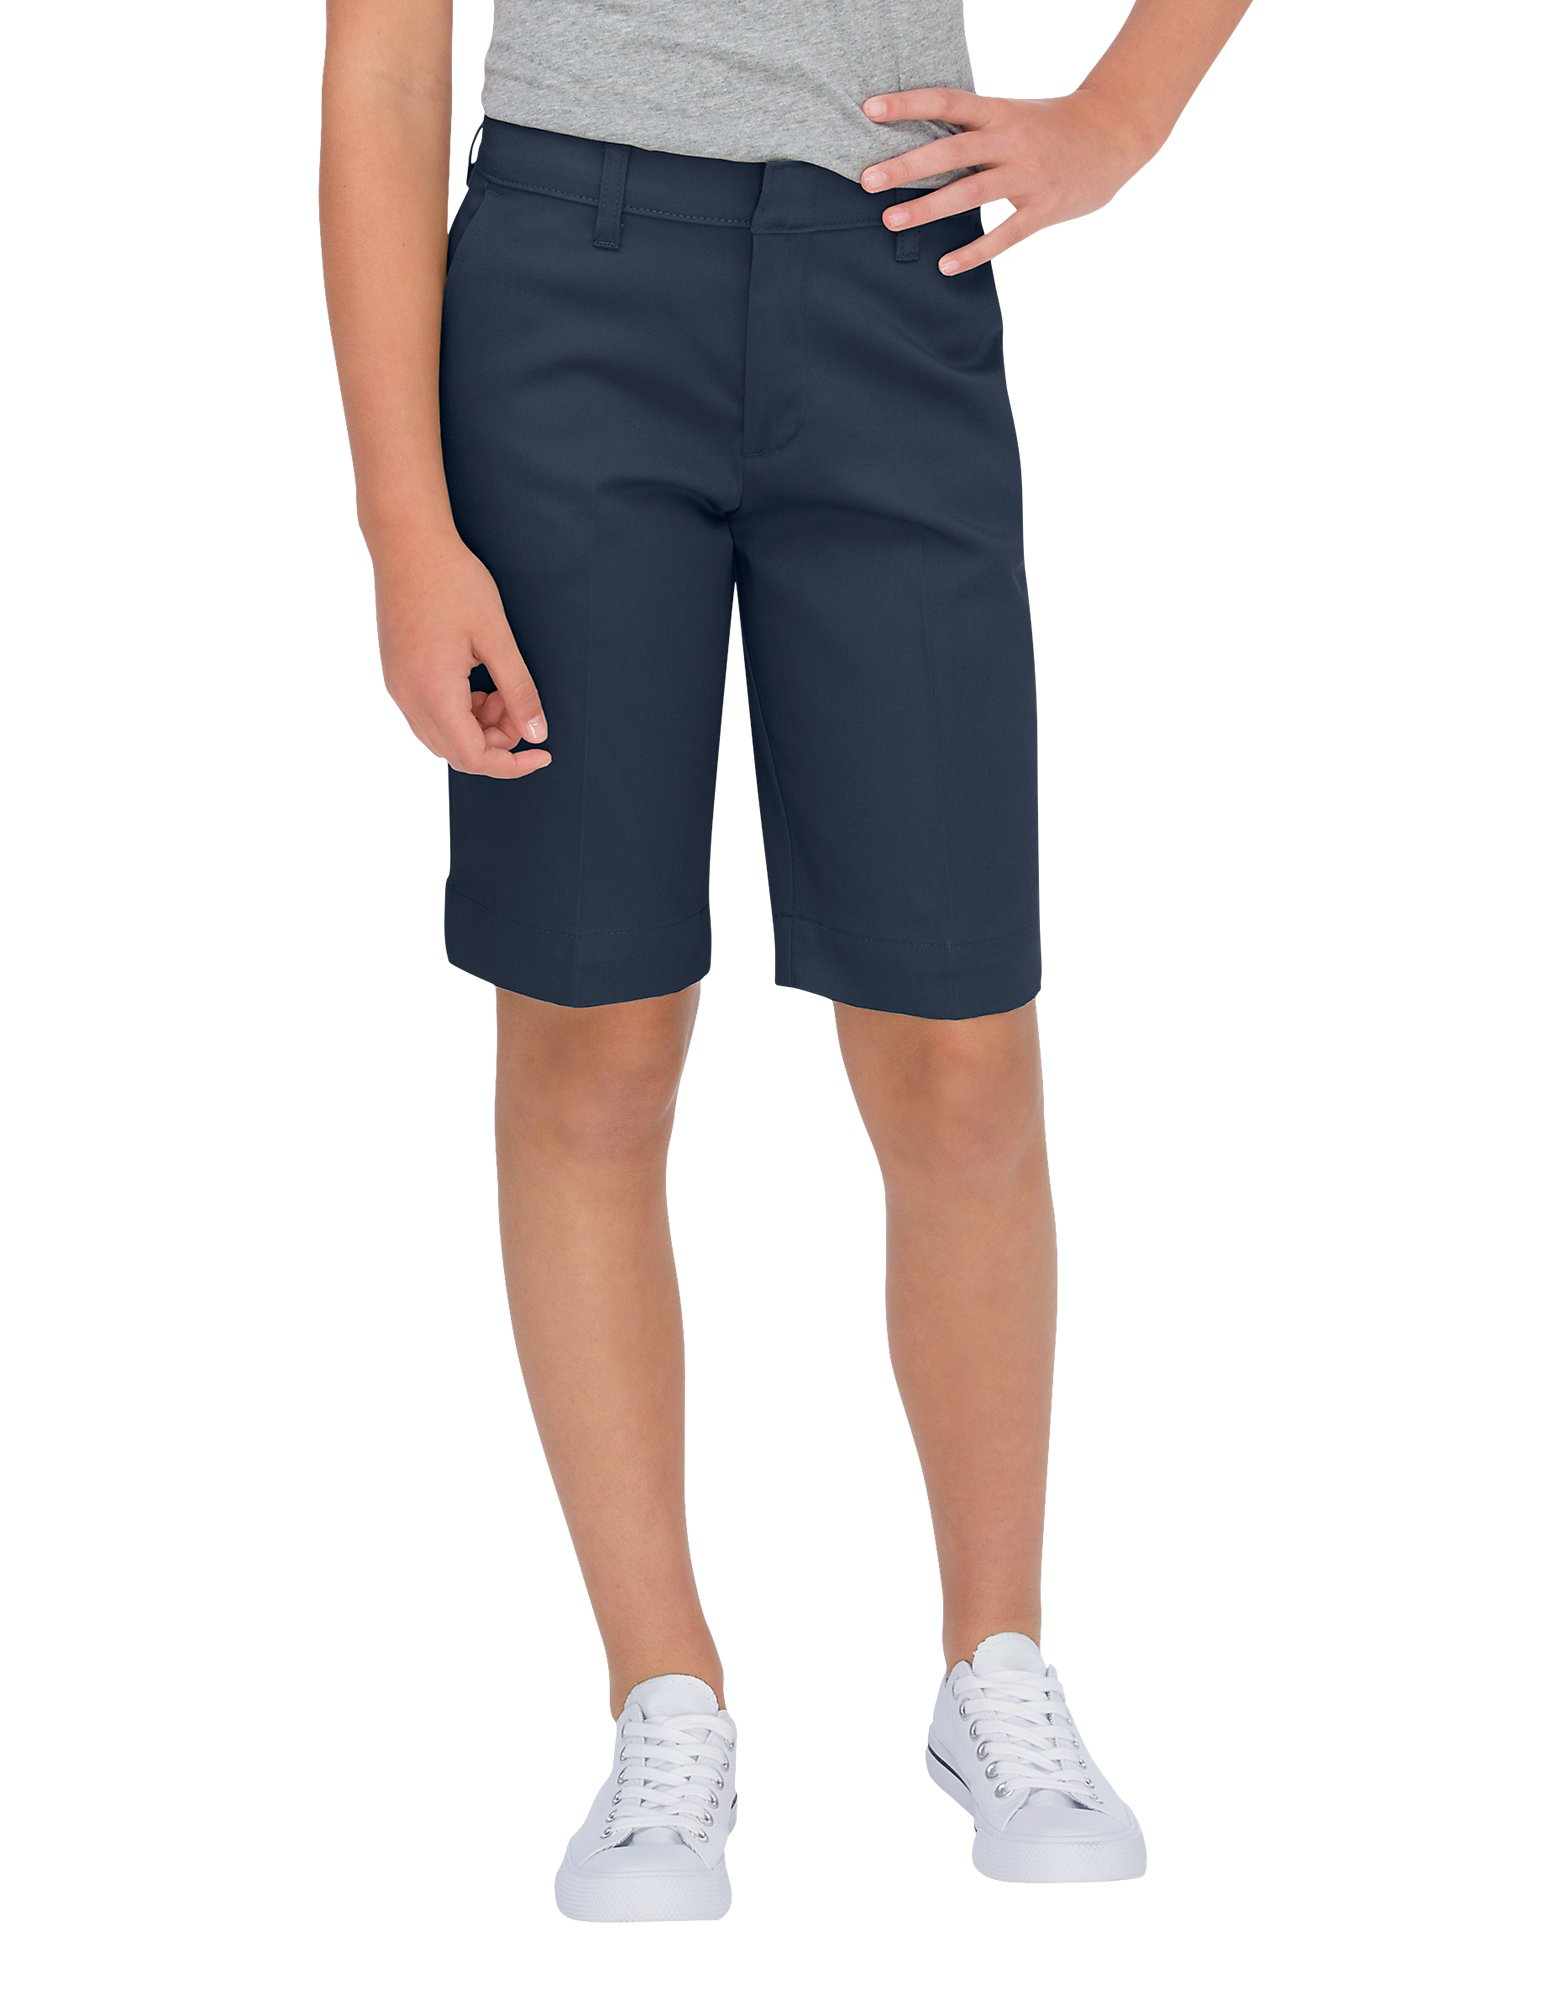 Girls' Classic Fit Bermuda Stretch Twill Shorts, 7-20 - Dark Navy (DN)